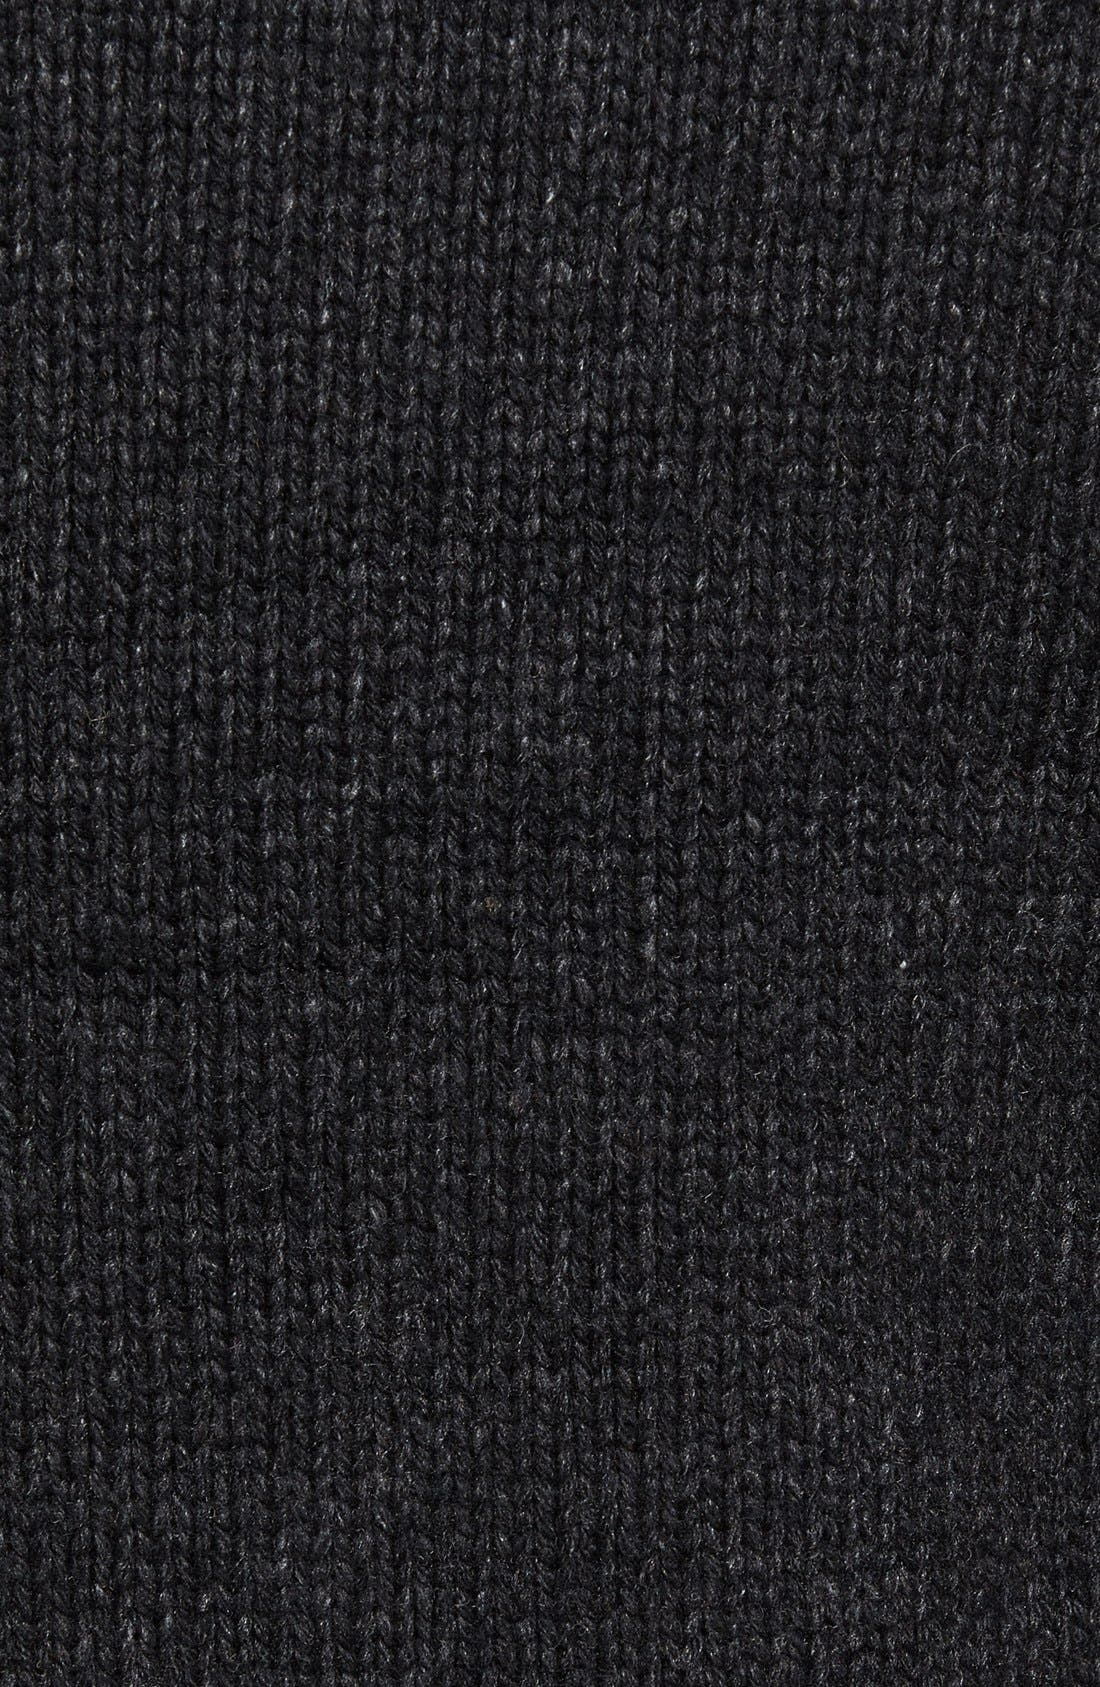 Lined Wool Zip Sweater,                             Alternate thumbnail 9, color,                             BLACK